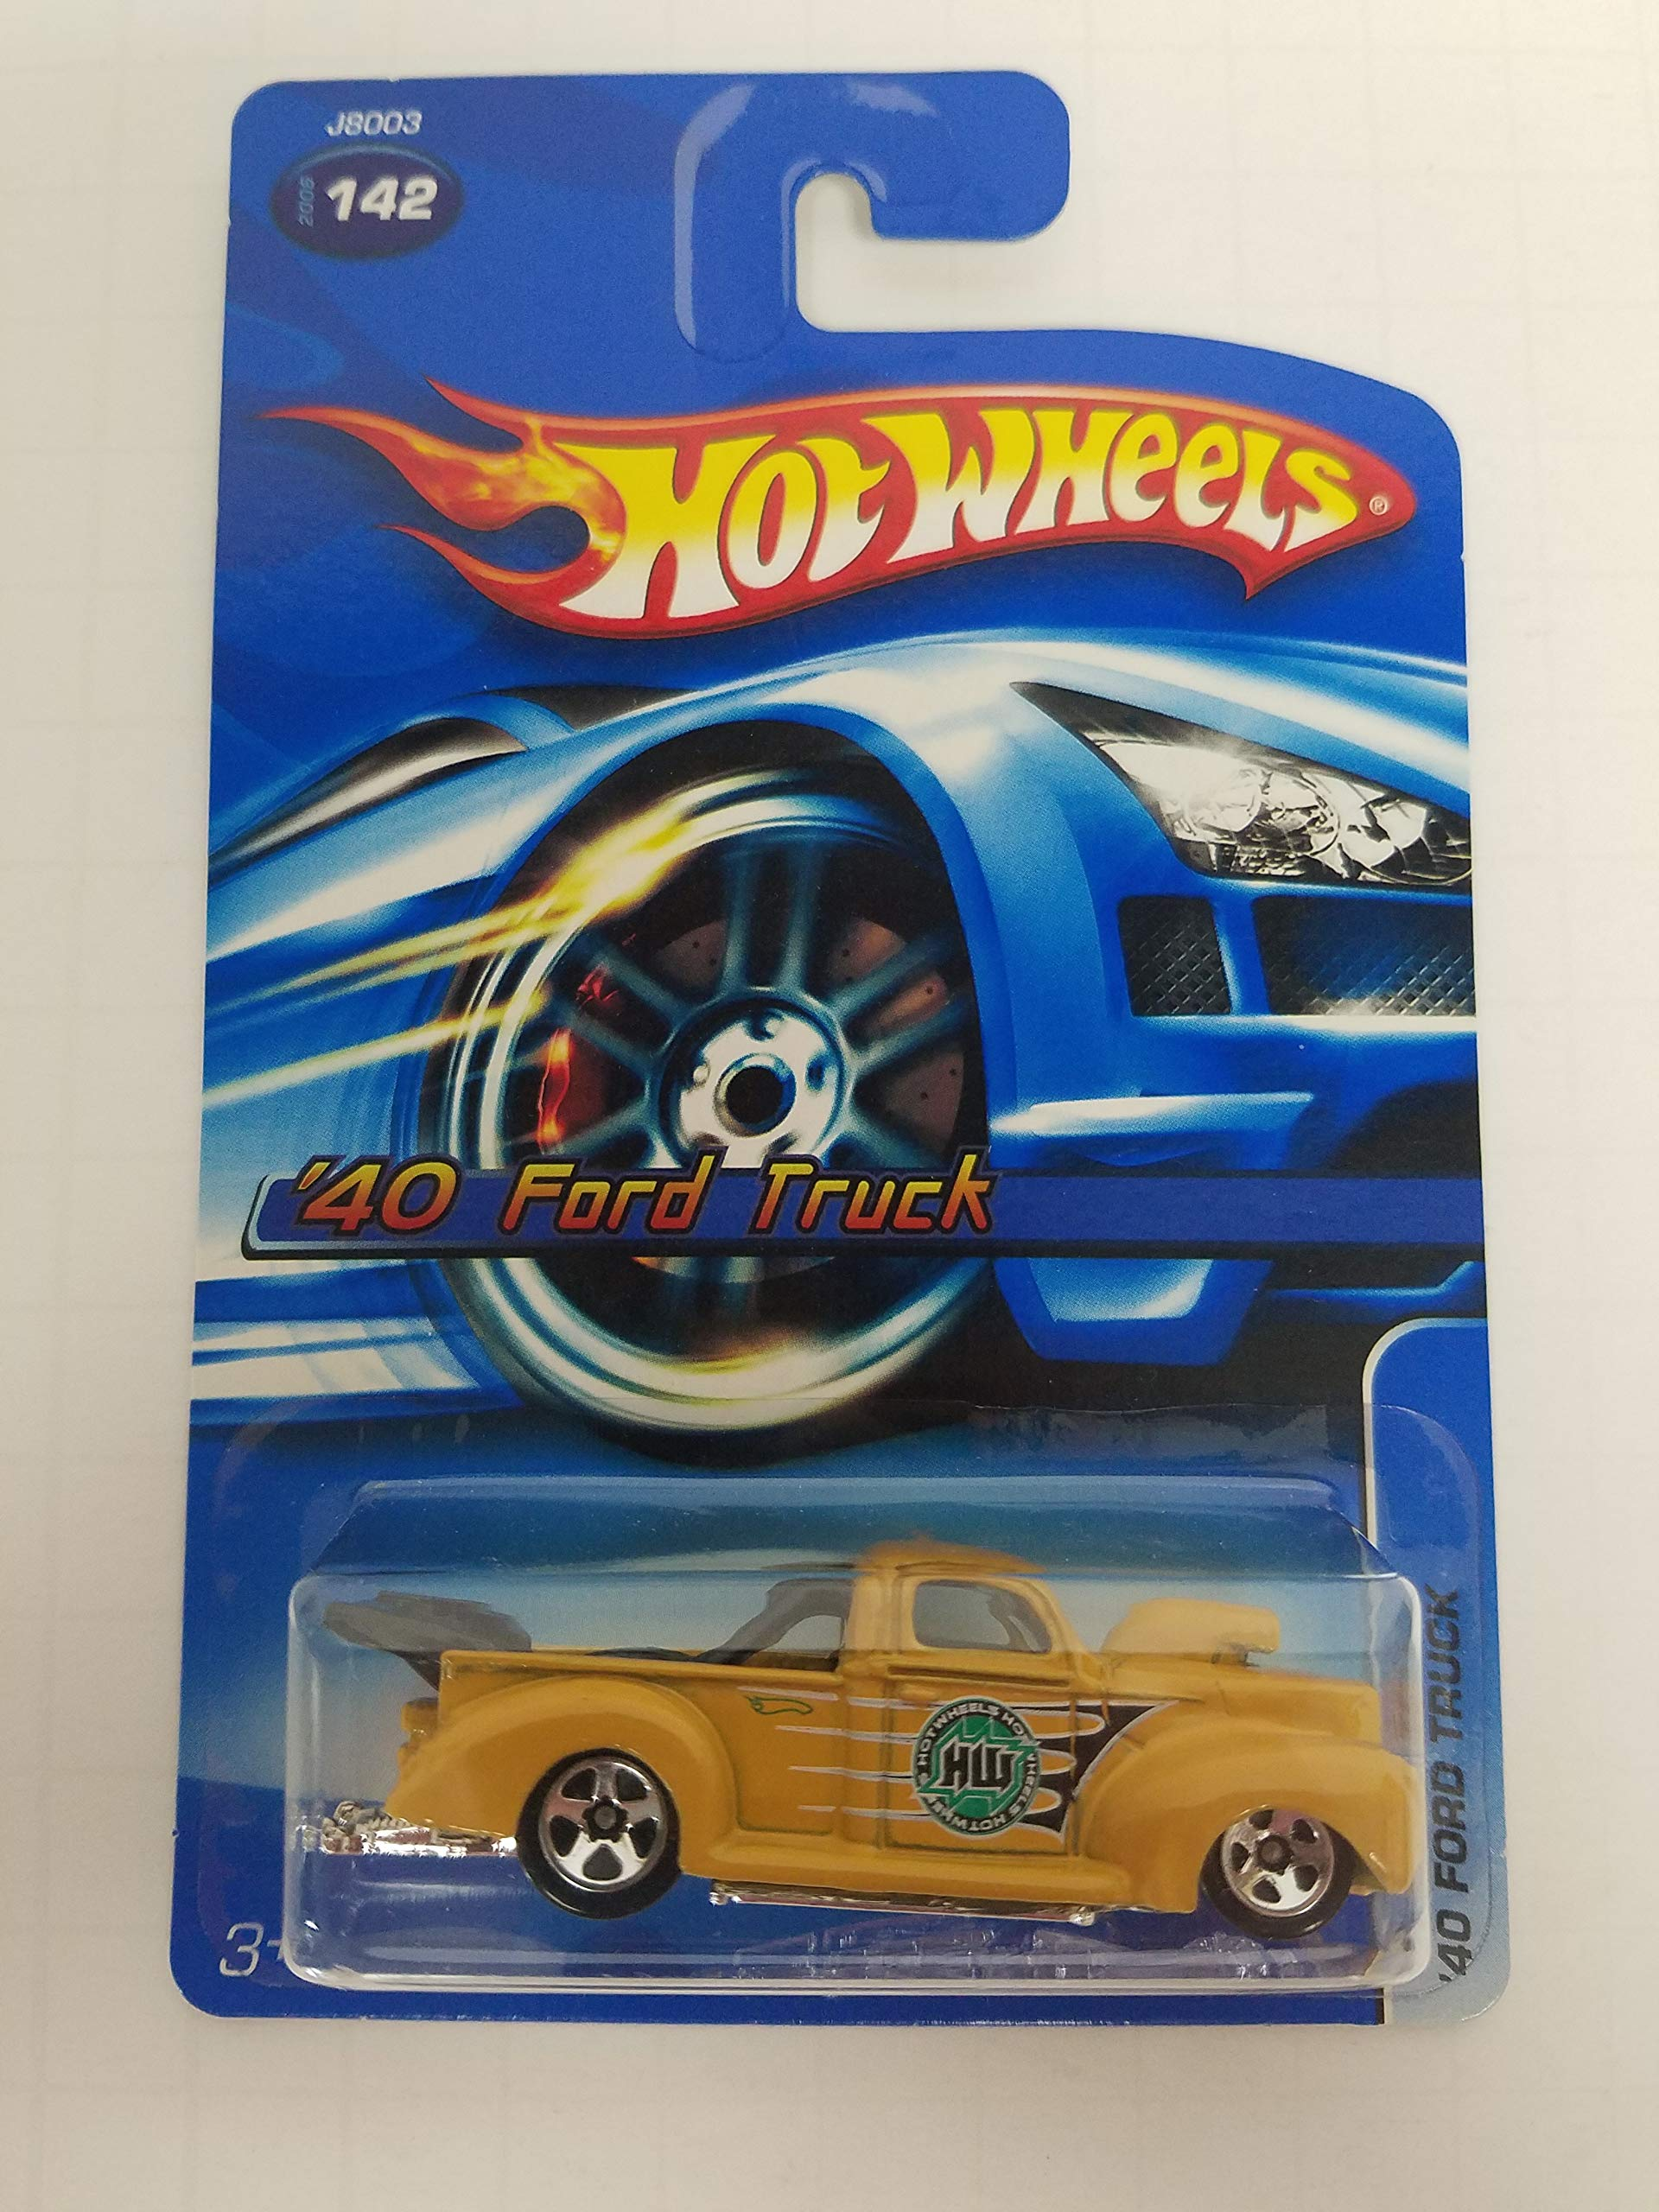 '40 Ford Truck No.142 Hot Wheels 2006 1/64 scale diecast car